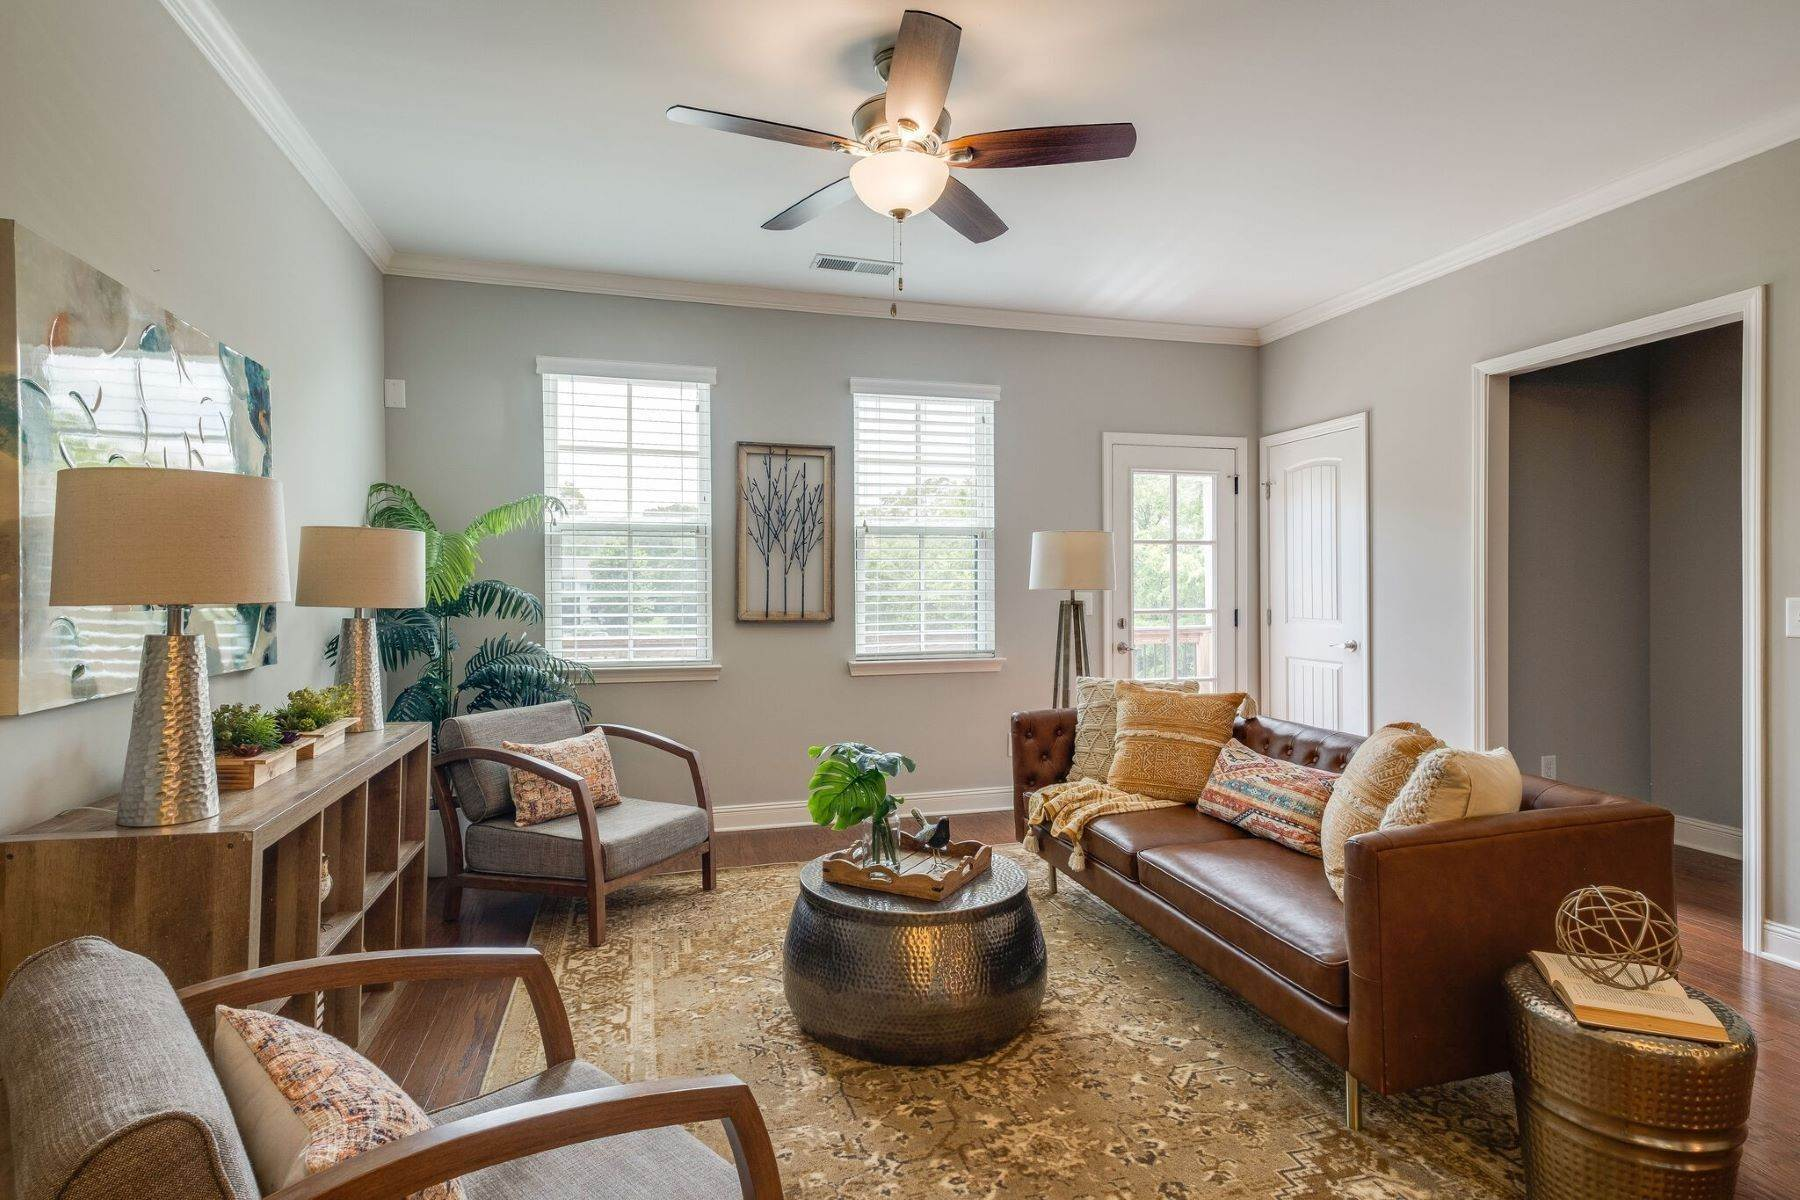 townhouses for Sale at 3180 Parthenon Avenue #106, Nashville, TN 37203 3180 Parthenon Avenue #106 Nashville, Tennessee 37203 United States